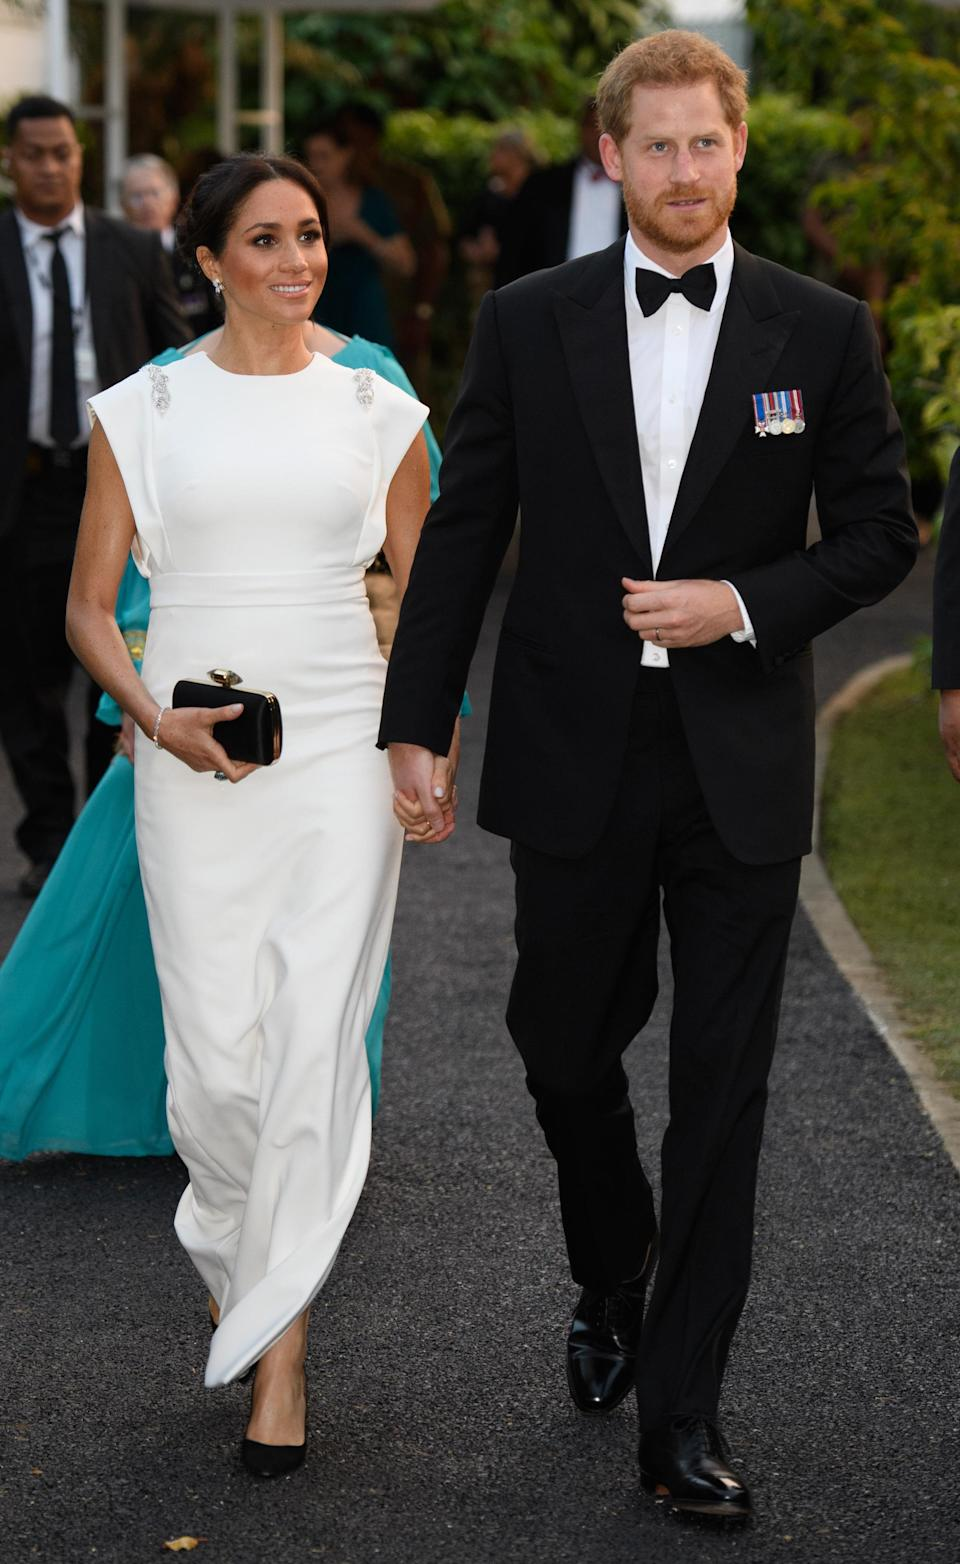 <p>For an evening reception in Tonga, the mother-to-be chose a white gown by Theia Couture with Aquazzura shoes, Birks earrings and her go-to Givenchy clutch. In a touching nod to Princess Diana, the Duchess finished the ensemble with the late royal's aquamarine ring. <em>[Photo: Getty]</em> </p>